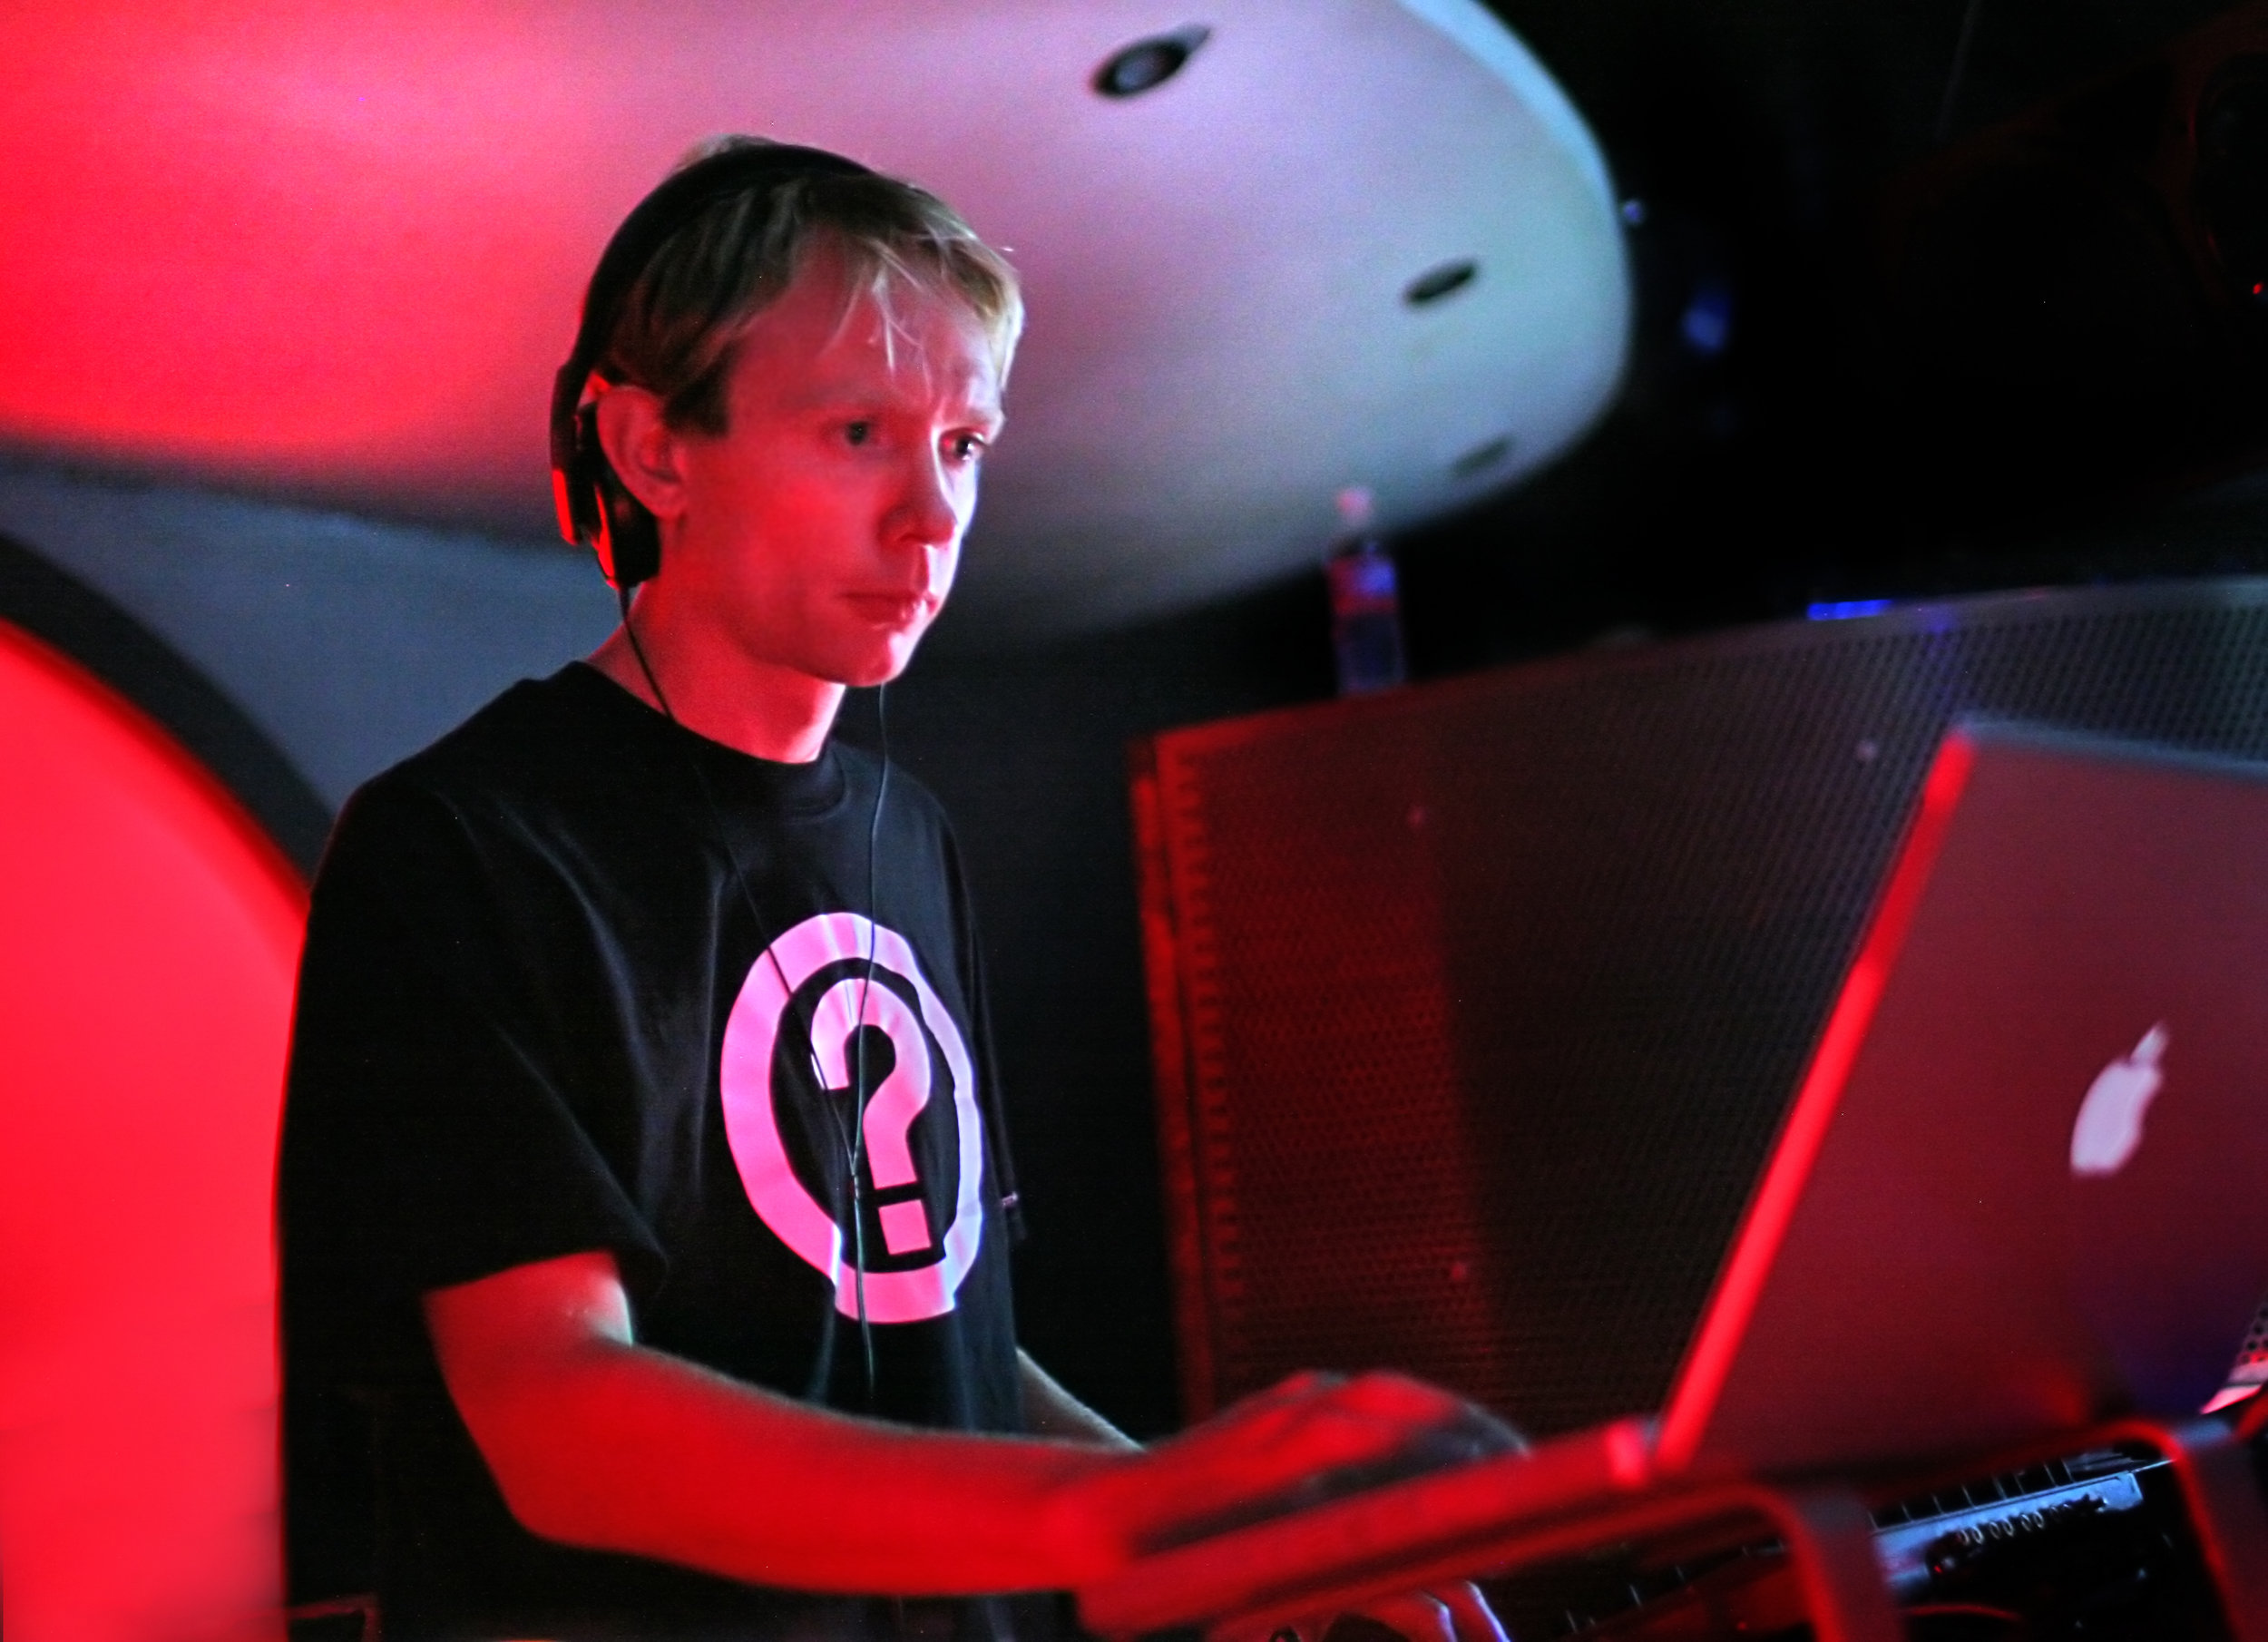 """Tipper performing in 2009. According to Benji Hannus of Wormhole Music Group, Tipper performed unannounced at Rain Dance Campout in 2010. """"He just showed up at the gate, said hi to all his friends, and played a Sunday set."""" ( Credit: Kyle Hailey)"""